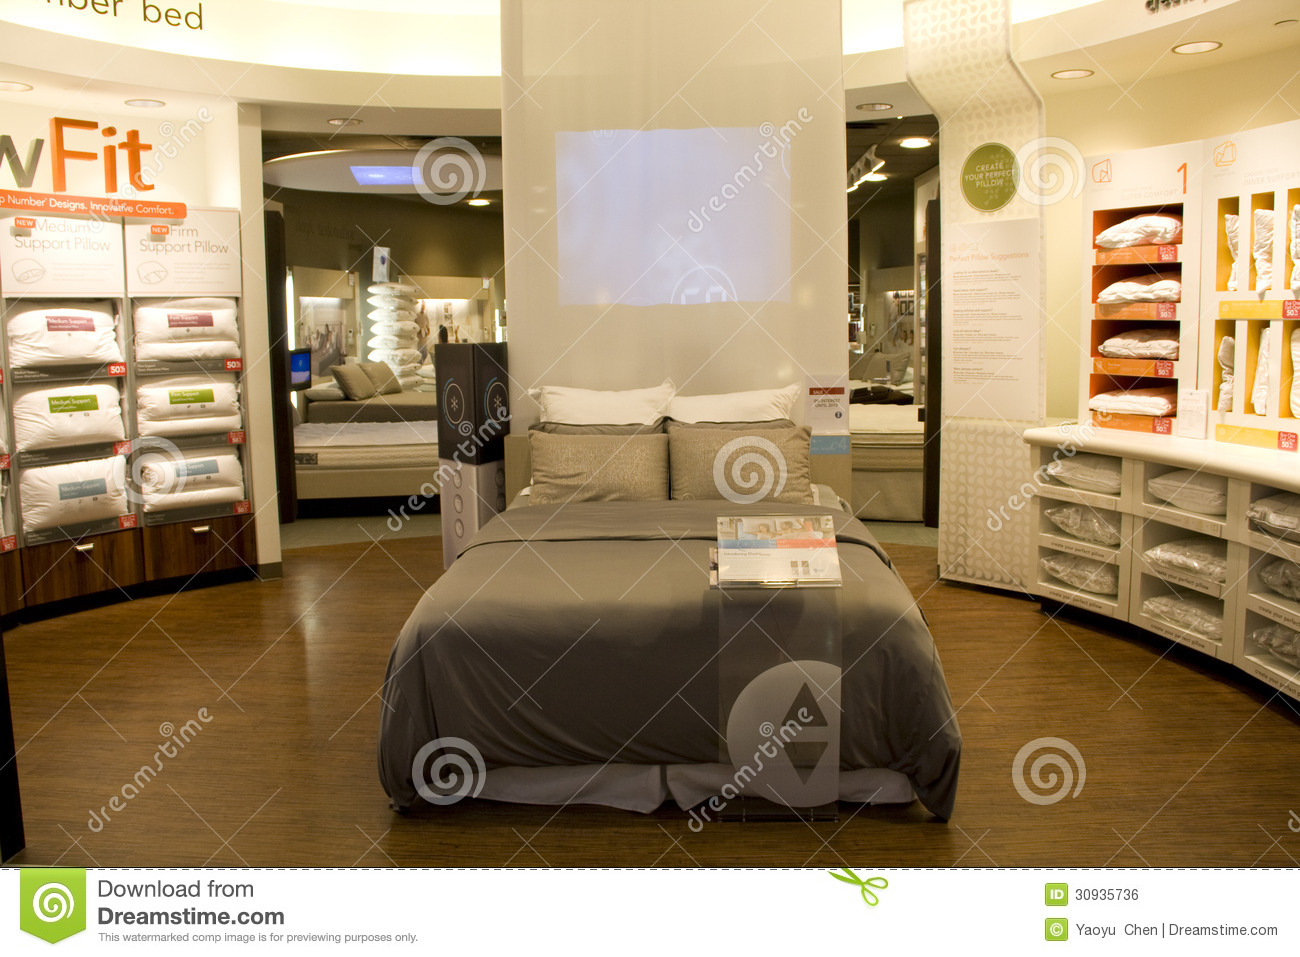 mattress store editorial photo image 30935736